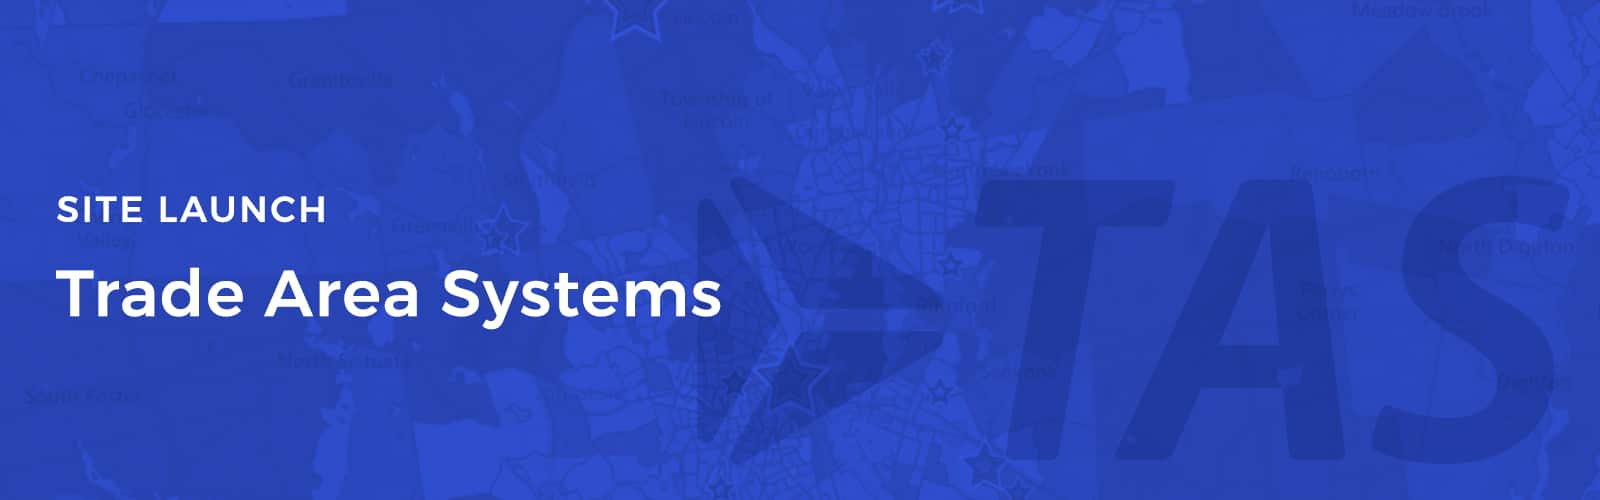 Trade Area Systems Site Launch